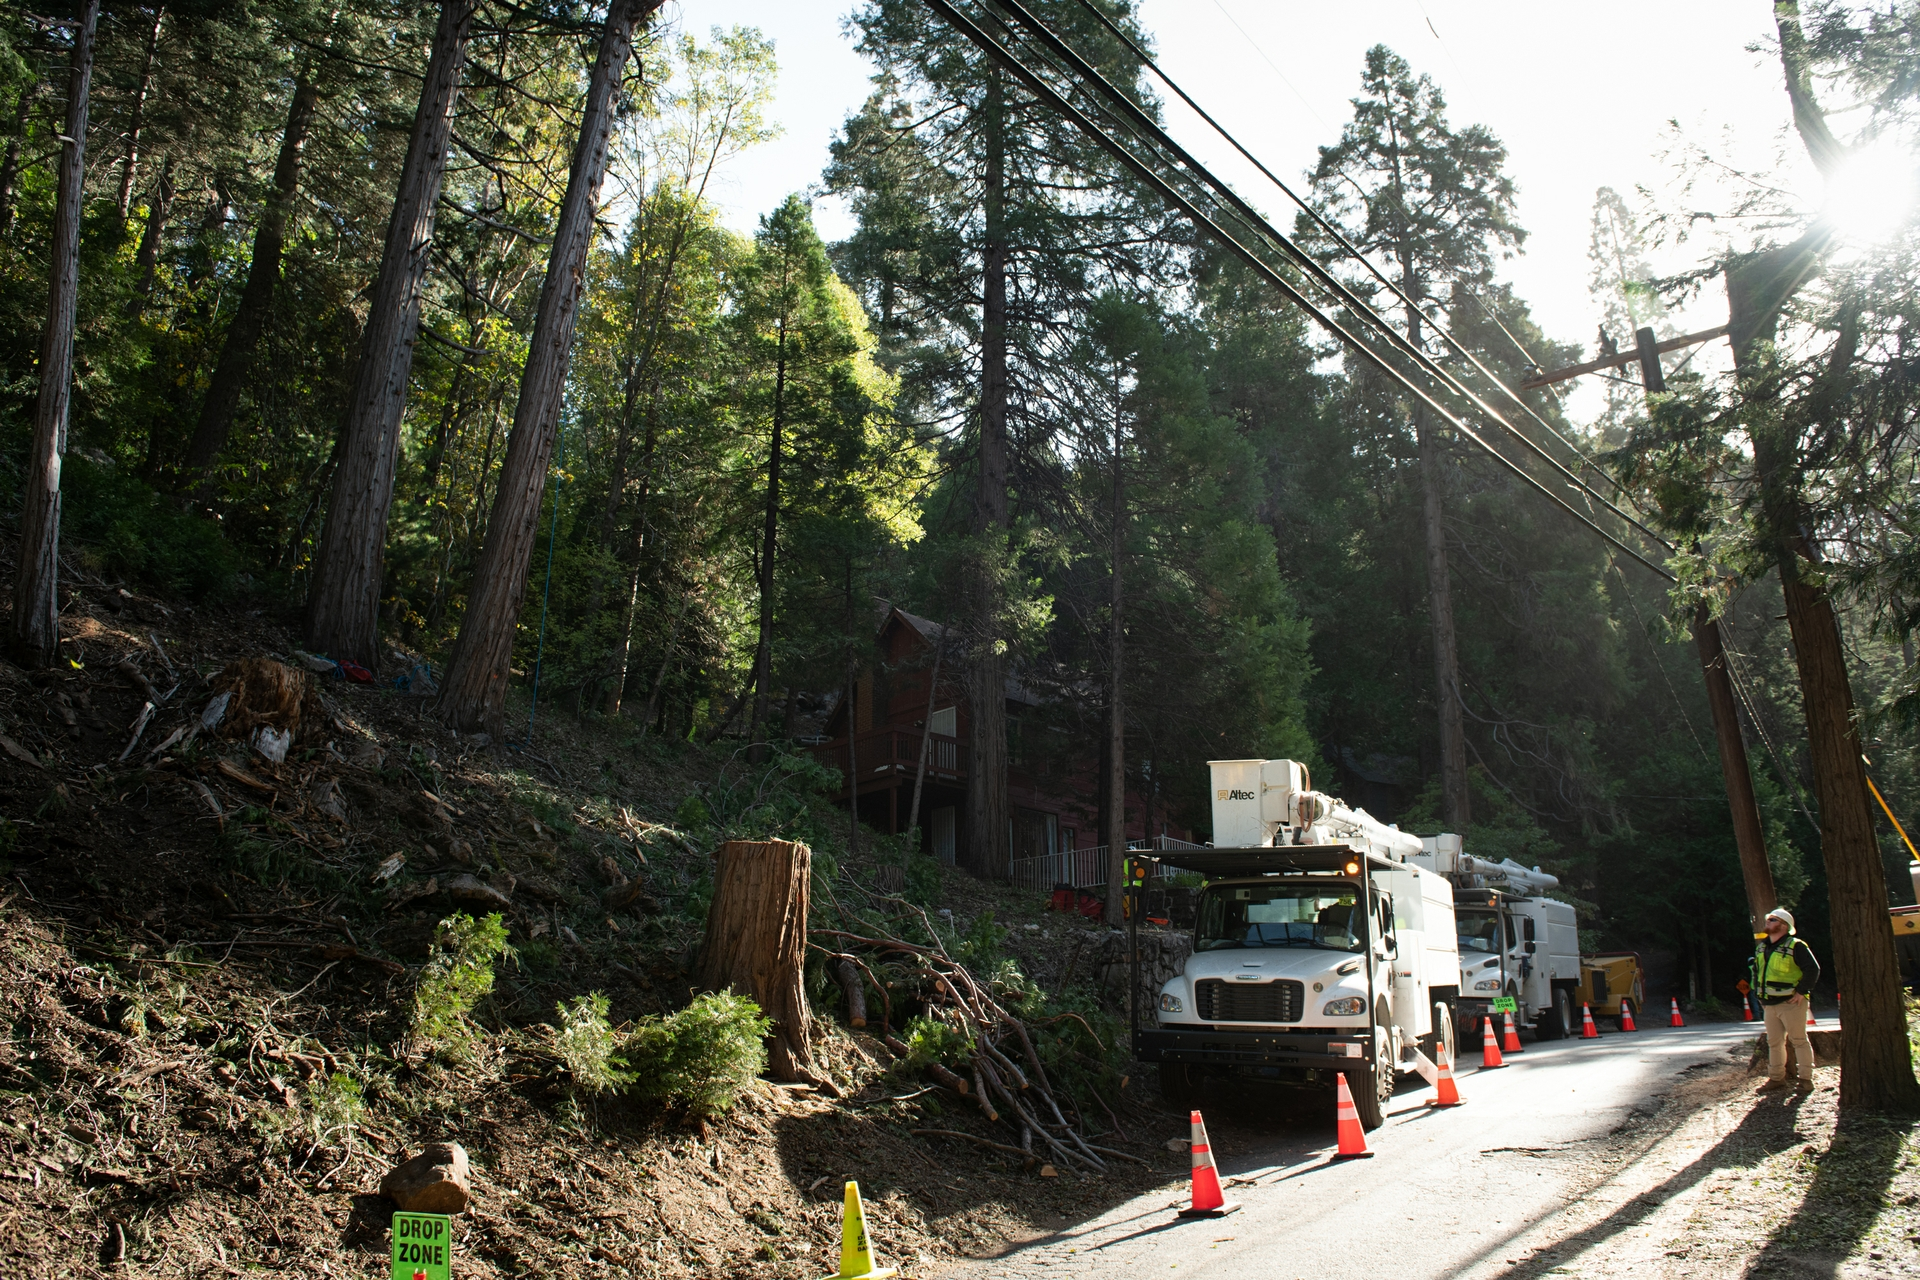 Crews work in the Arrowhead area removing trees that pose a hazard to SCE power lines.